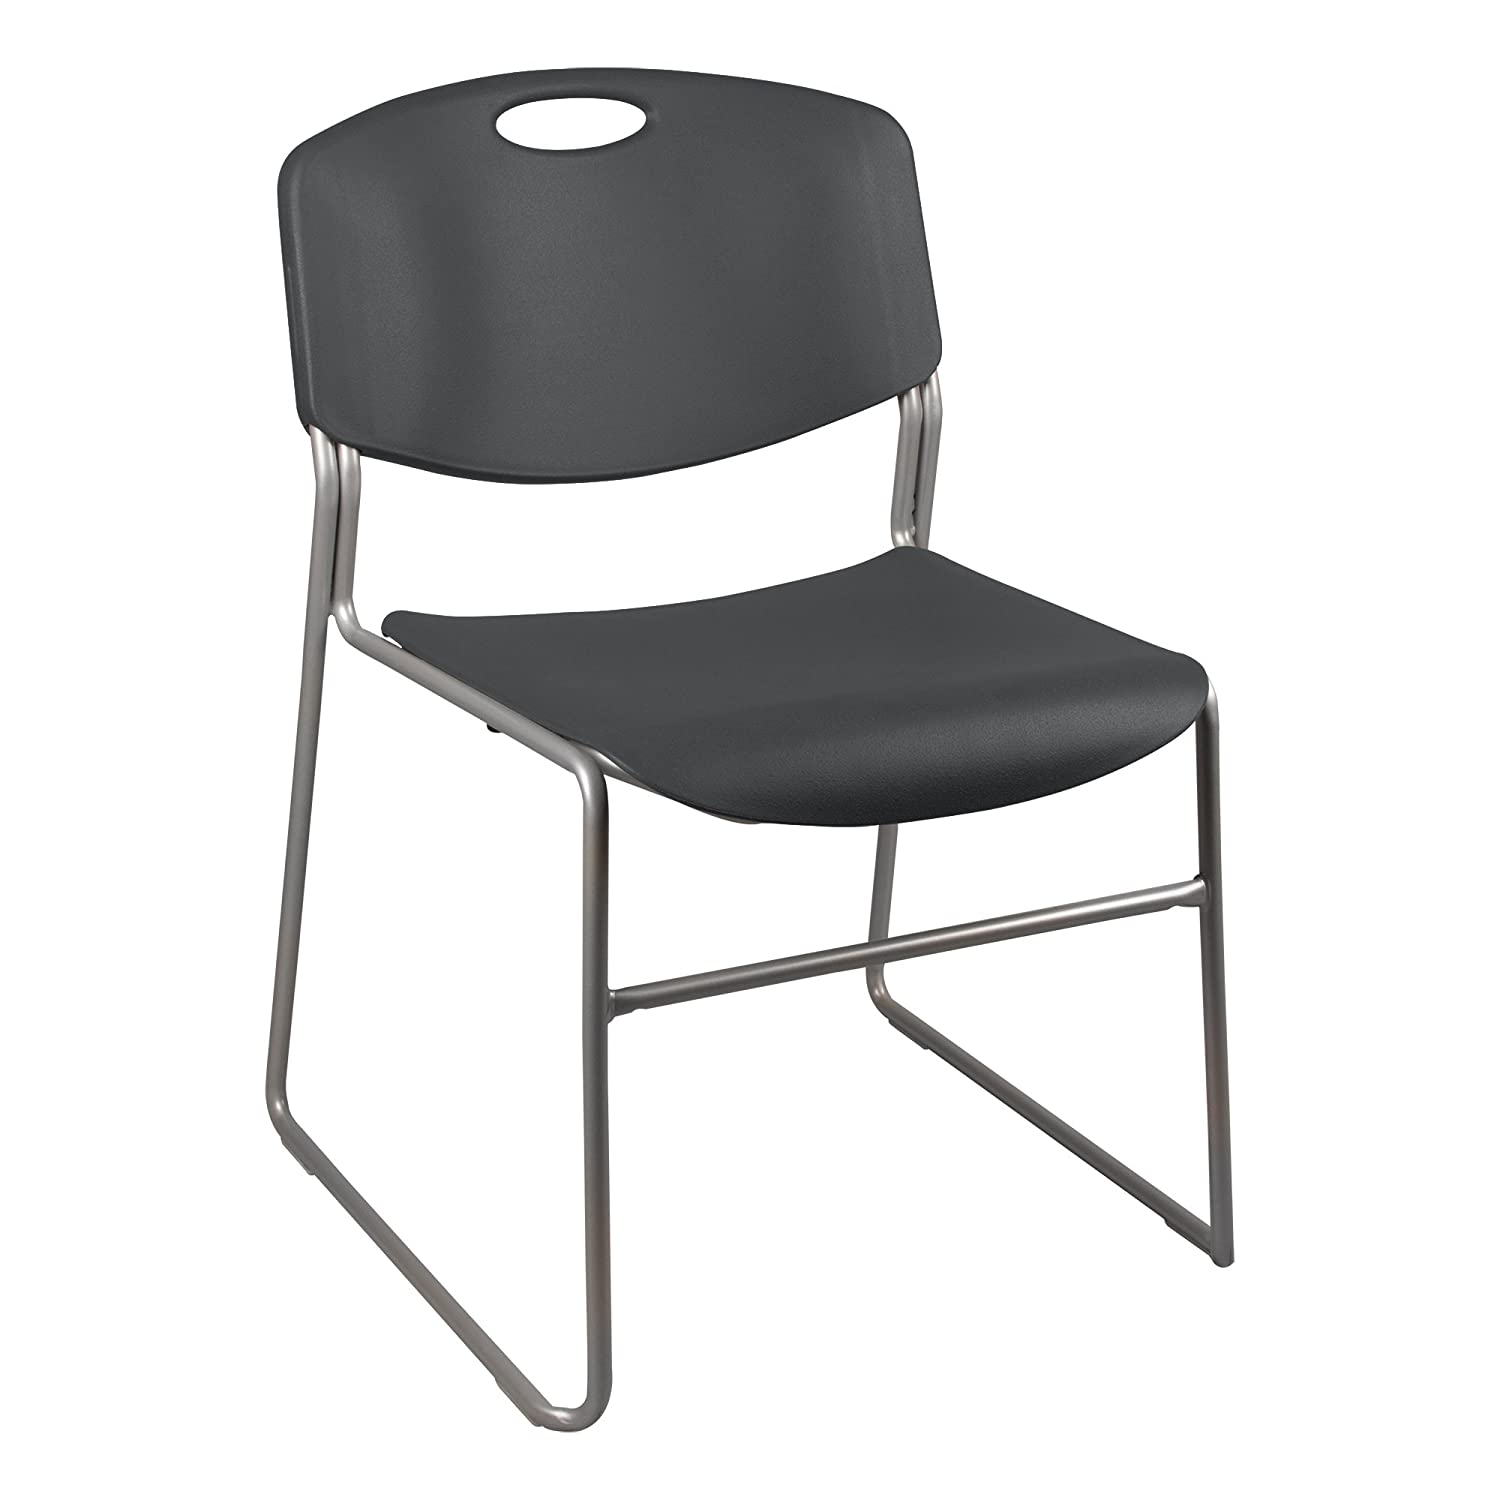 Norwood Commercial Furniture Heavy Duty Plastic Stacking Chair, Charcoal Seat w/ Silver Frame, NOR-FEI1059CH-SO (Pack of 4)